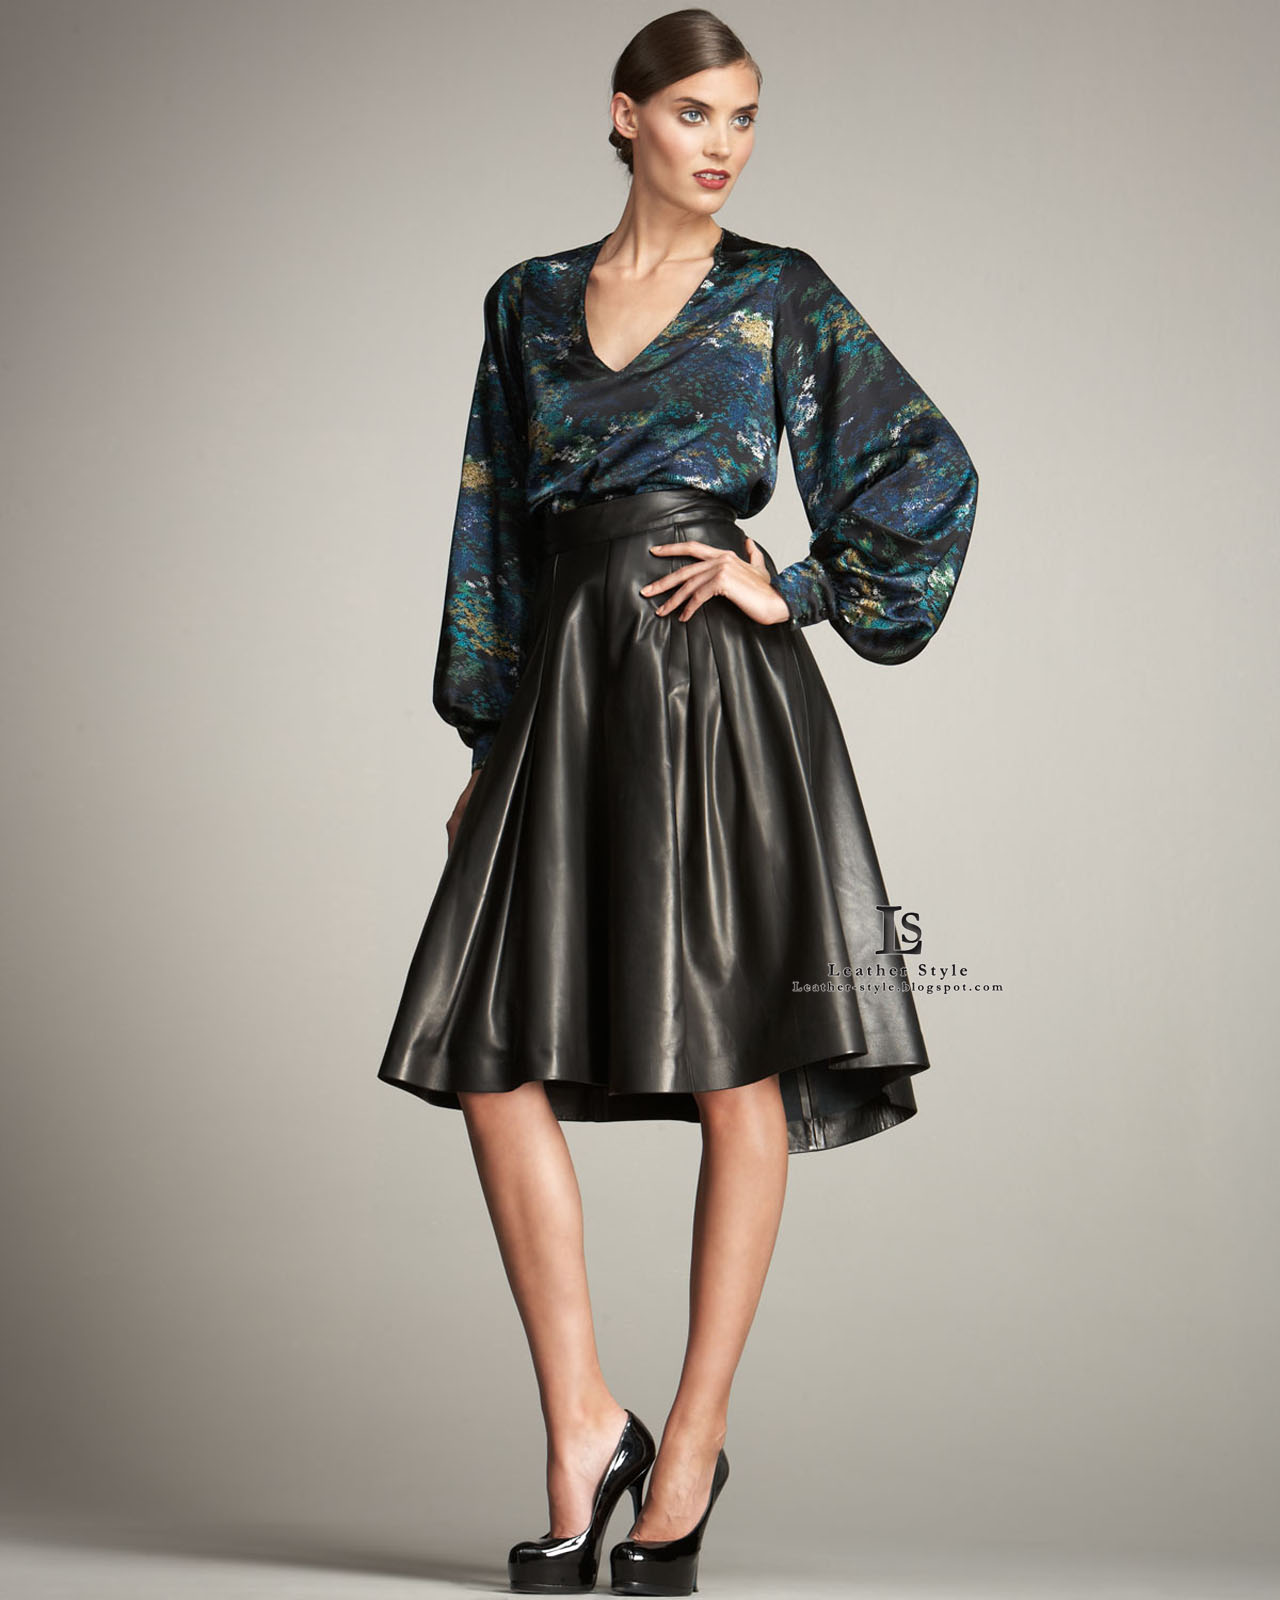 Satin pleated skirts and blouses